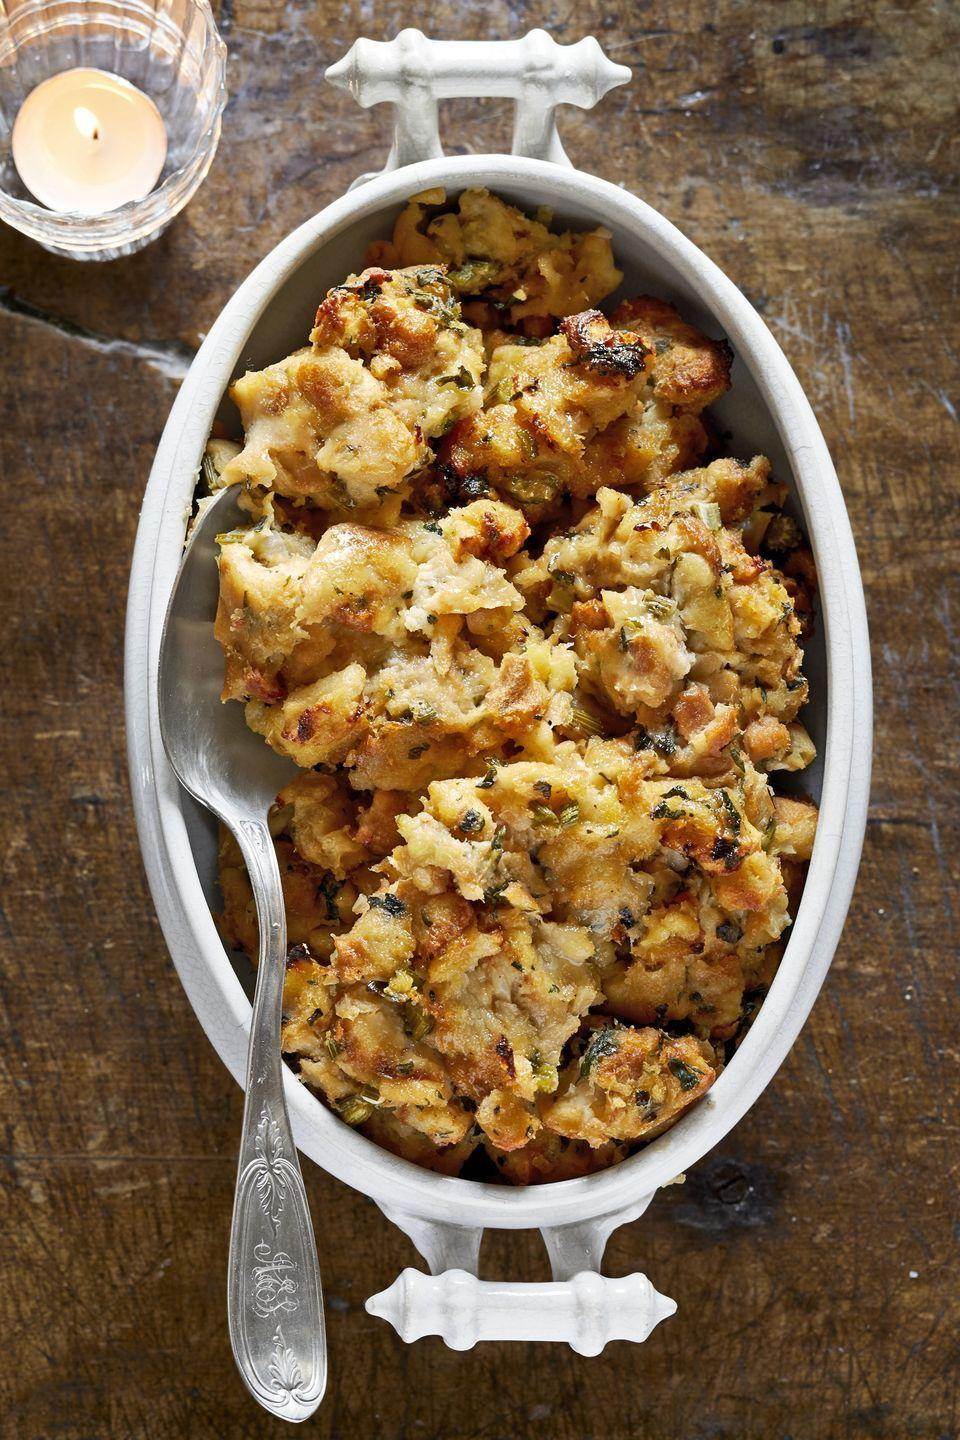 "<p>No Thanksgiving table is complete without stuffing. This recipe uses a whole loaf of bread and flavorful herbs—it doesn't get any better than that.</p><p><strong><a href=""https://www.countryliving.com/food-drinks/a29131607/fresh-herb-stuffing/"" rel=""nofollow noopener"" target=""_blank"" data-ylk=""slk:Get the recipe"" class=""link rapid-noclick-resp"">Get the recipe</a>.</strong></p><p><strong><a class=""link rapid-noclick-resp"" href=""https://www.amazon.com/dp/B074Z5X8MT/?tag=syn-yahoo-20&ascsubtag=%5Bartid%7C10050.g.896%5Bsrc%7Cyahoo-us"" rel=""nofollow noopener"" target=""_blank"" data-ylk=""slk:SHOP BAKING DISHES"">SHOP BAKING DISHES</a><br></strong></p>"